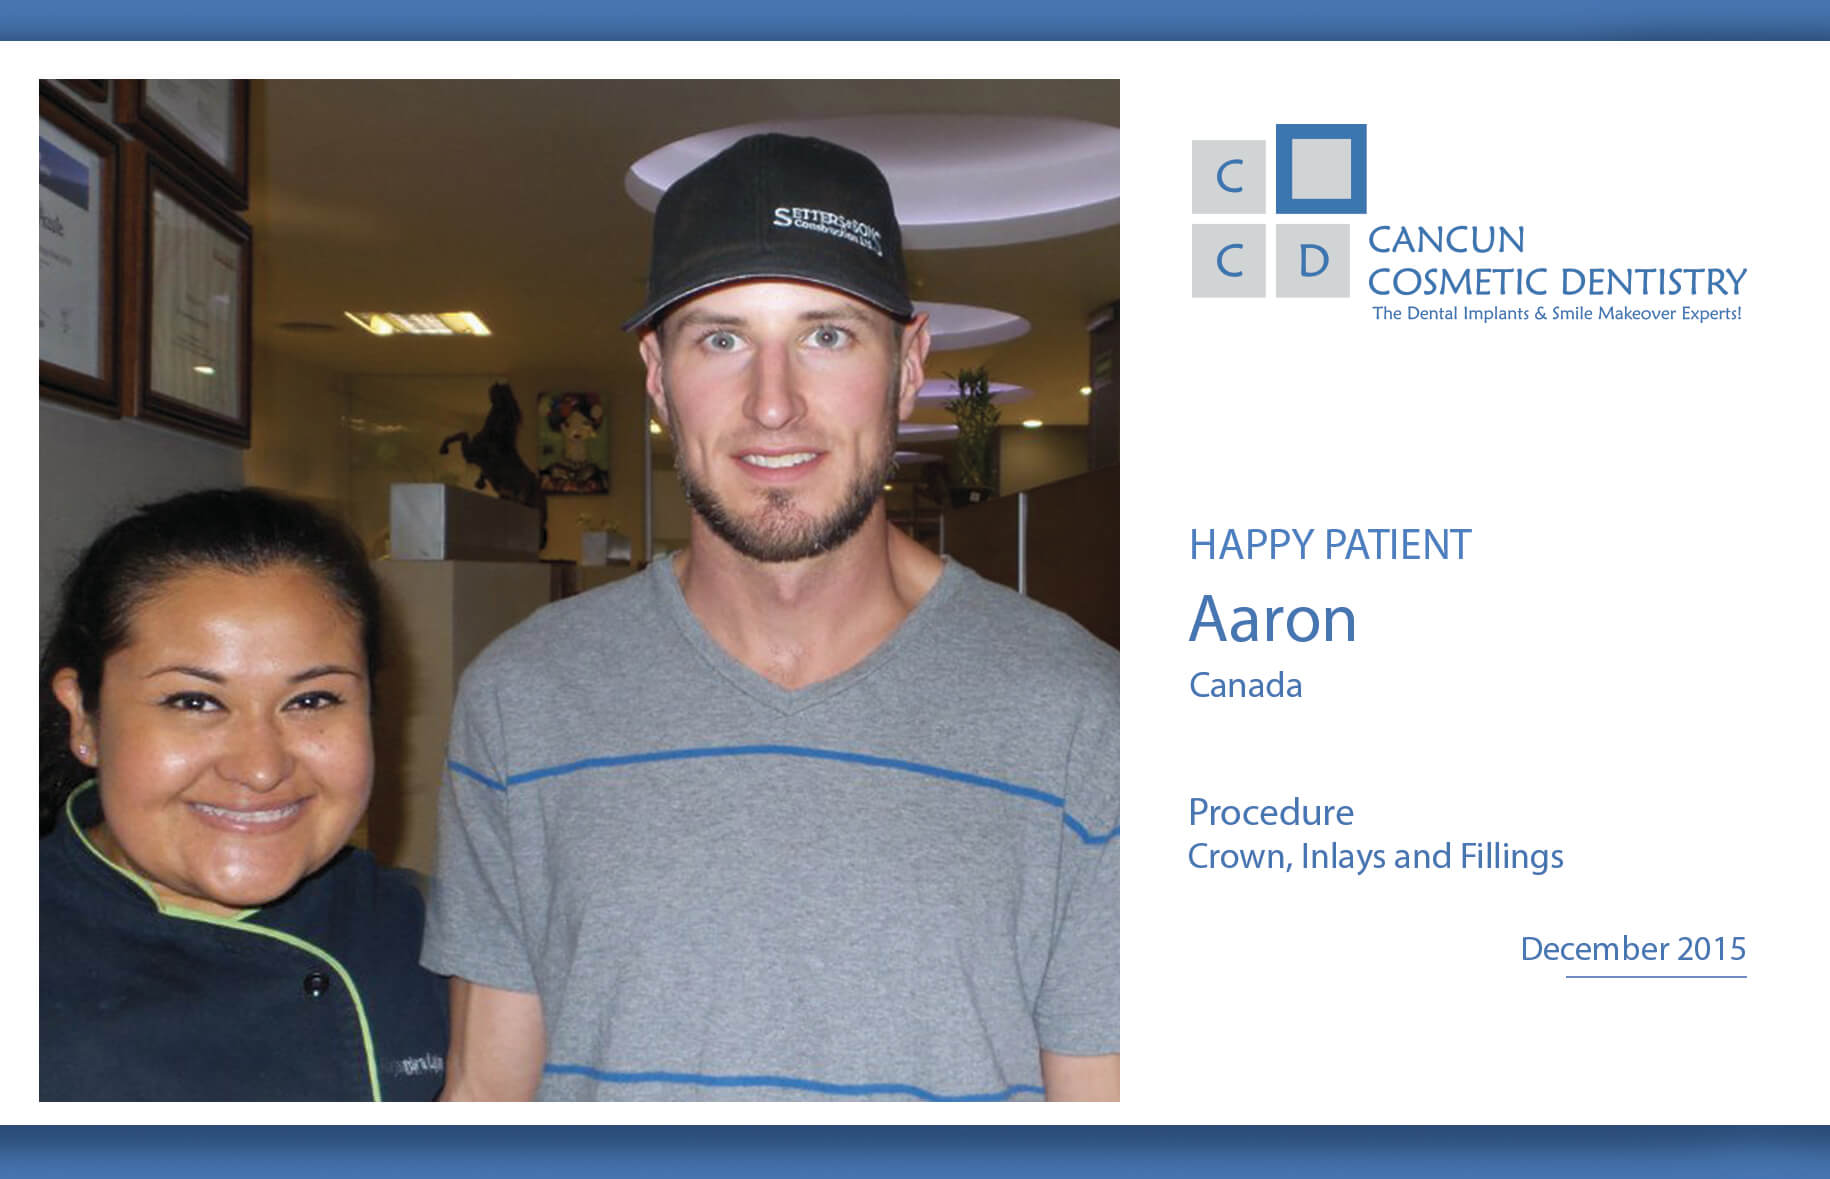 Affordable dental crowns, inlays, onlays, fillings, dental cleanings in Cancun Cosmetic Dentistry